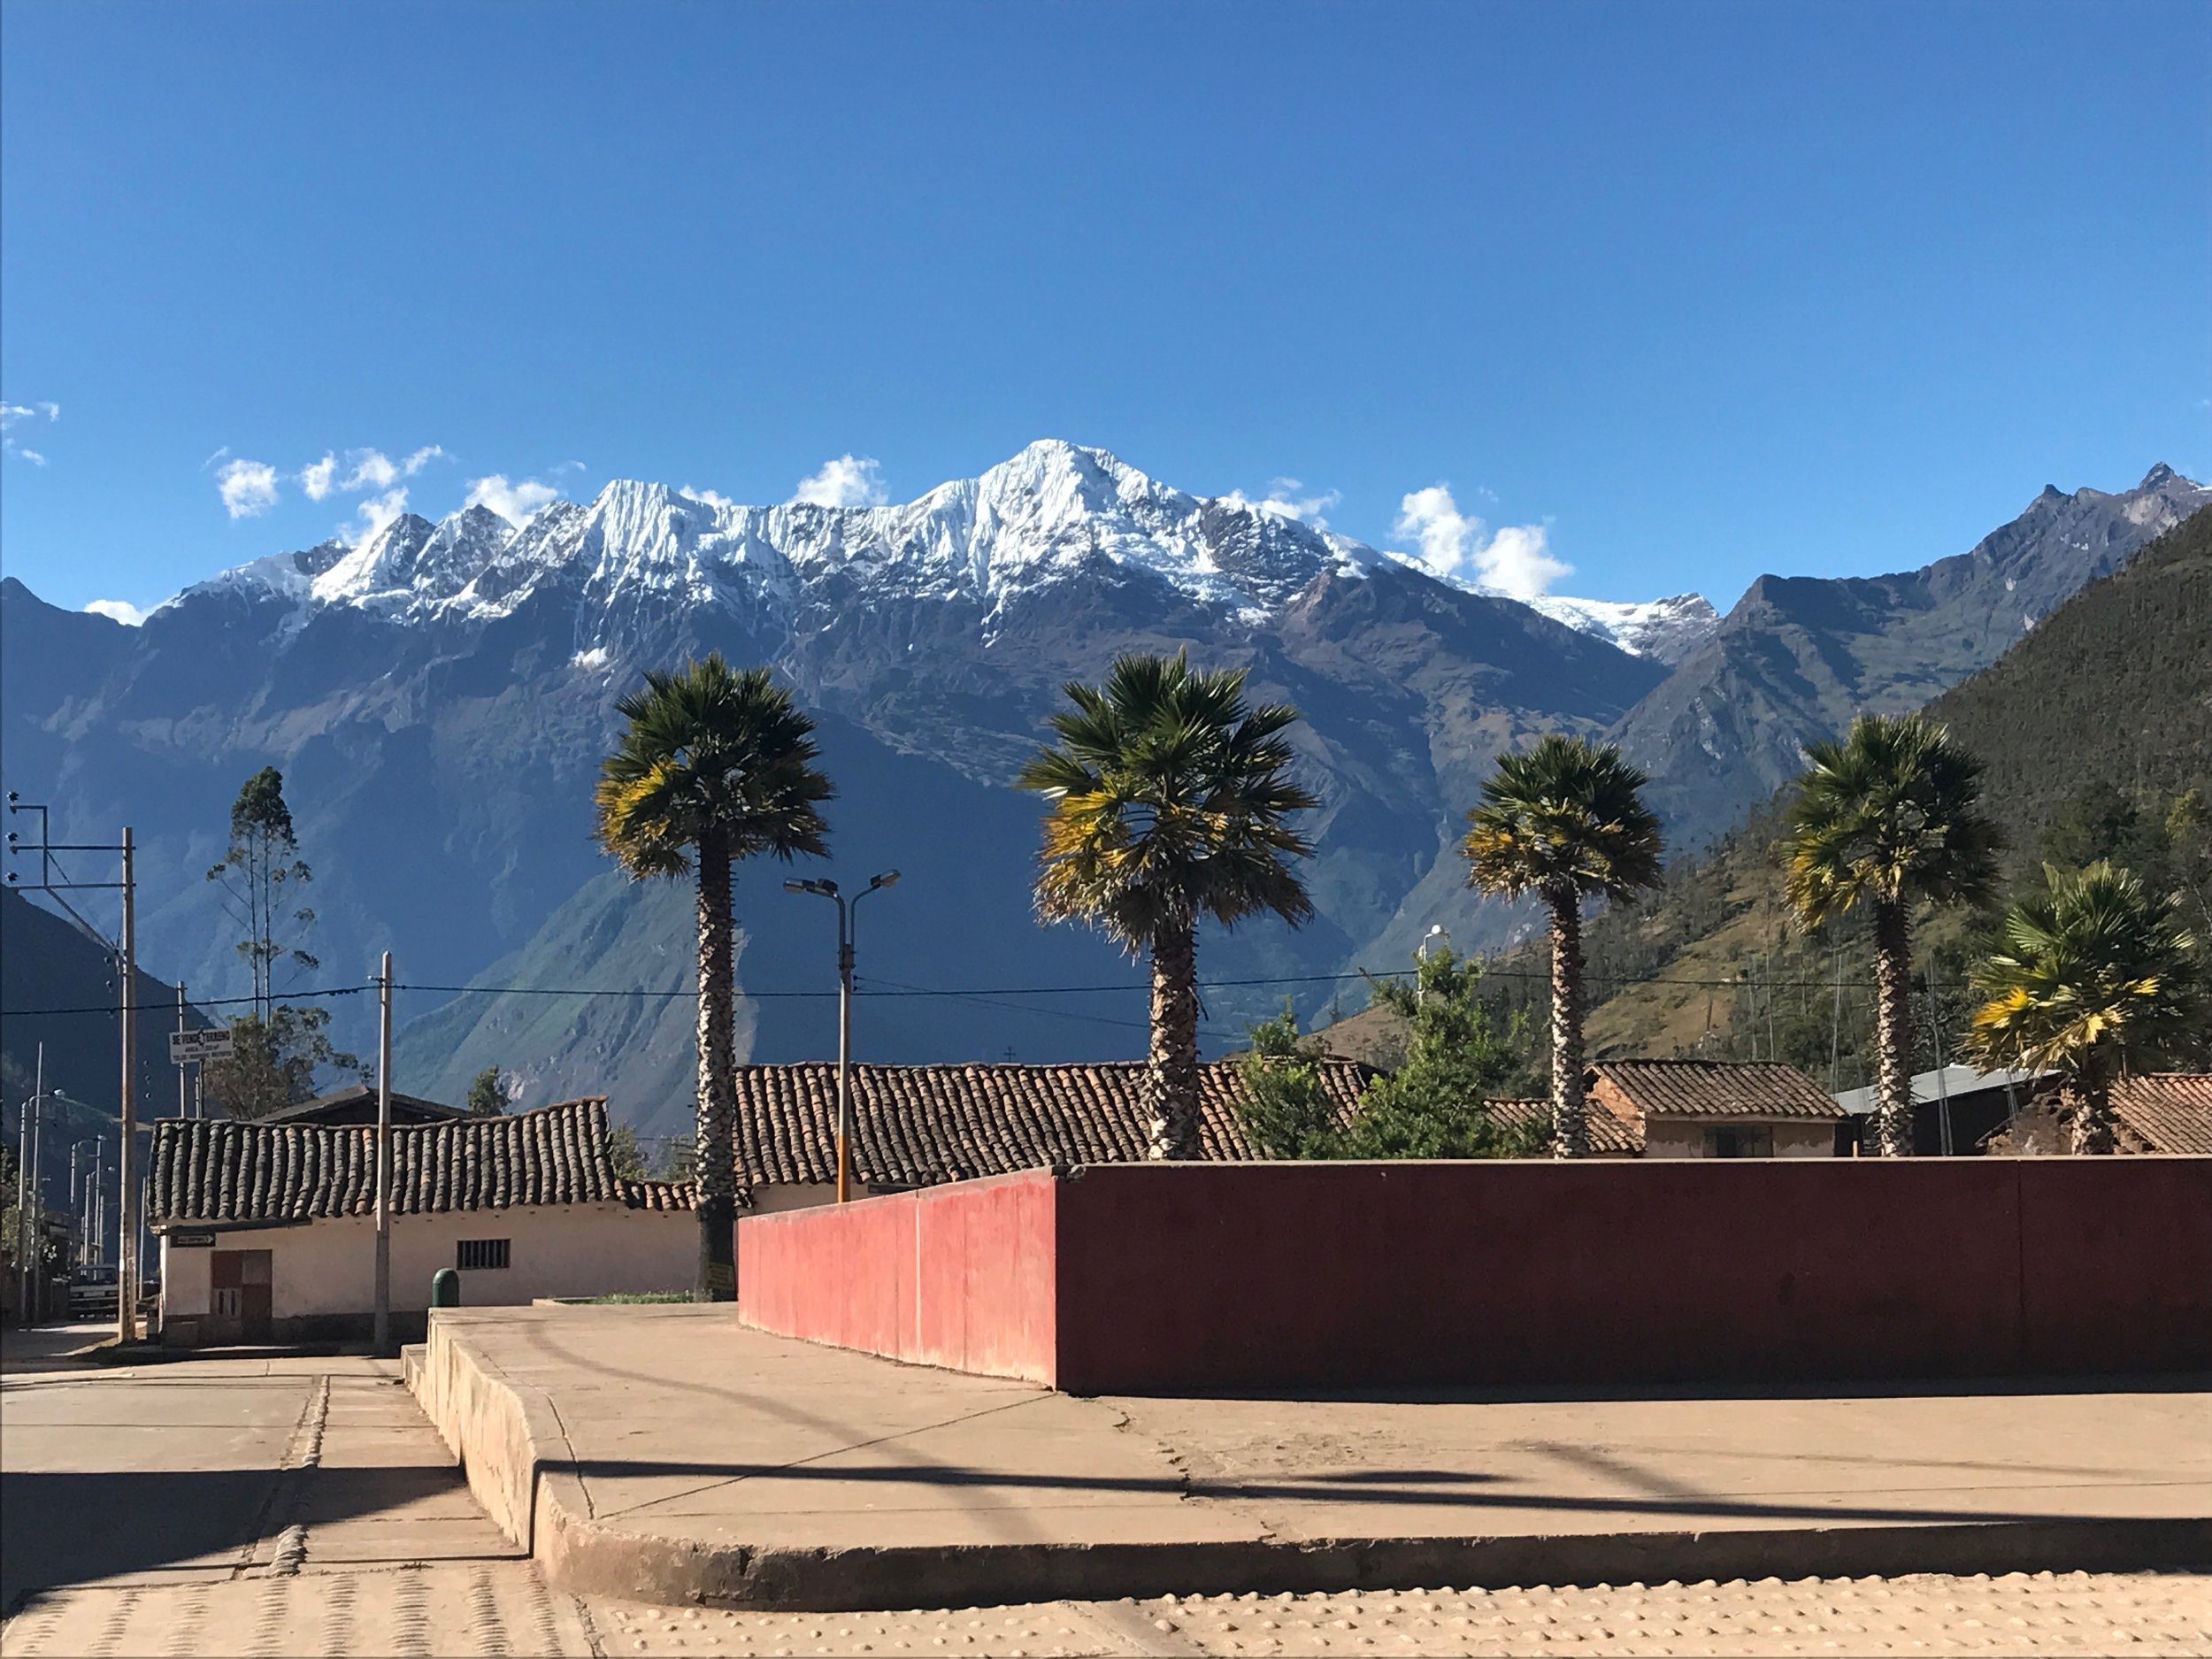 Main Square in Cachora - palm trees and snow capped peaks!